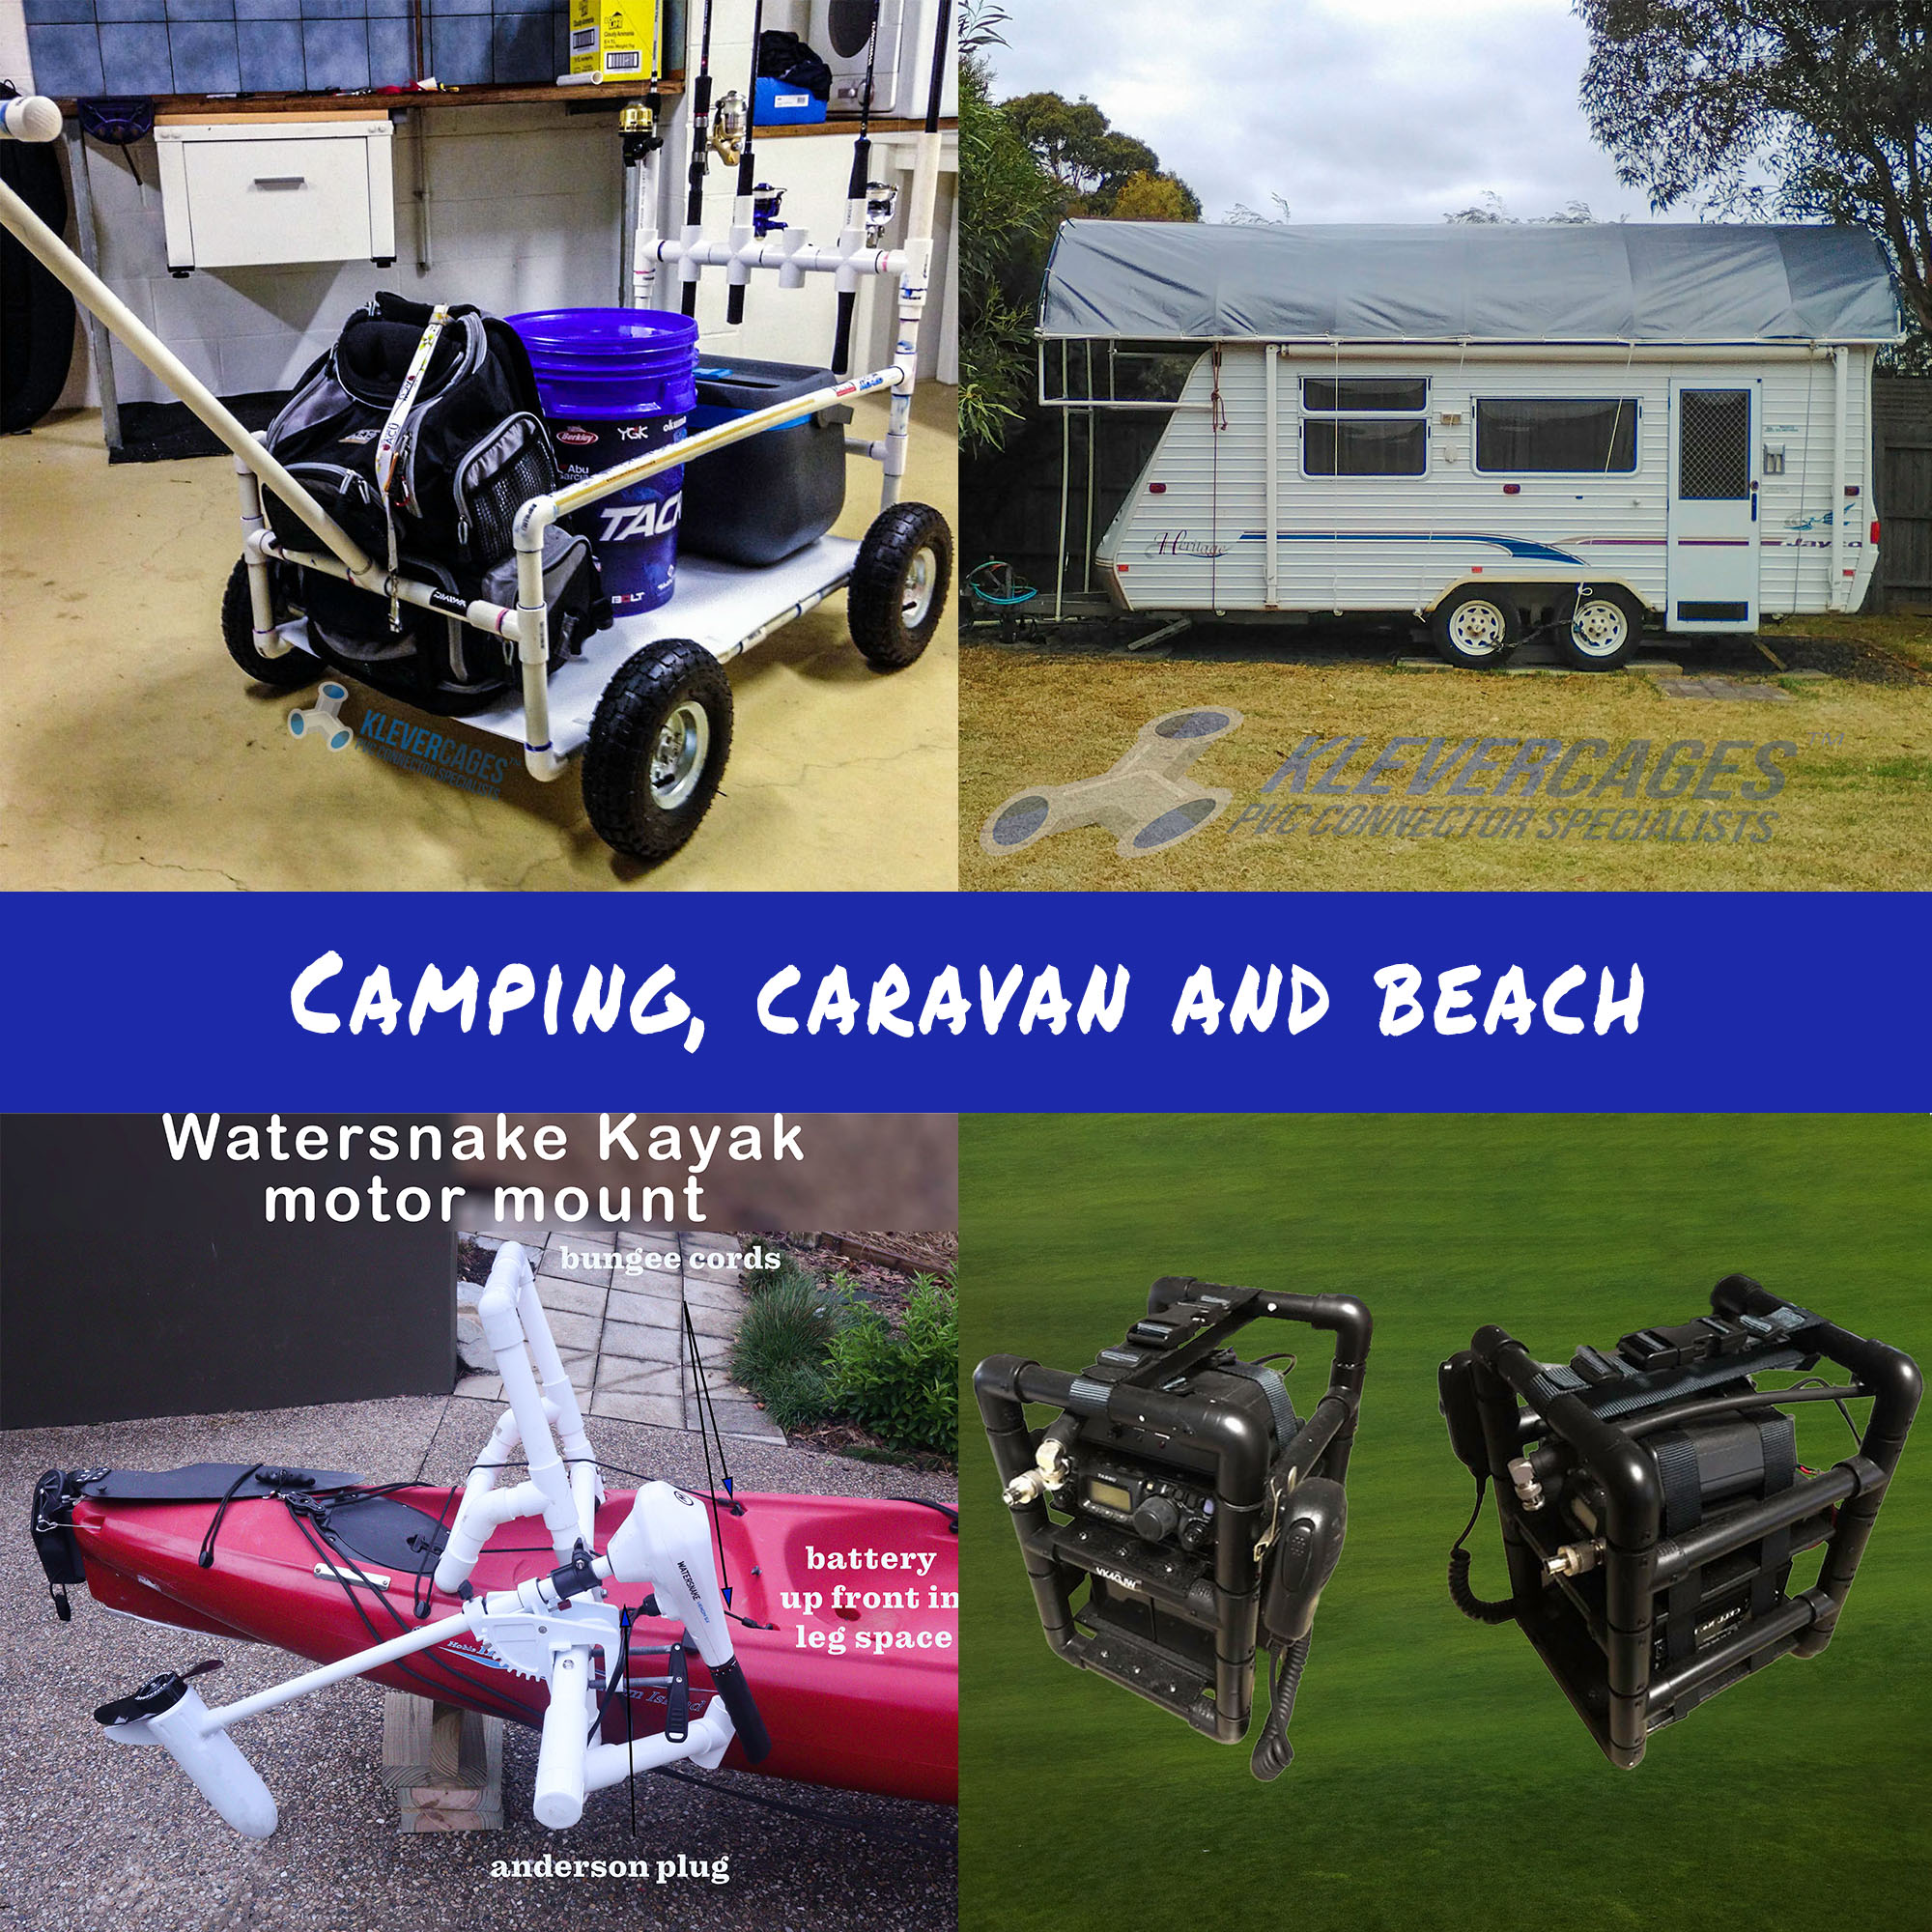 Photos of camping, caravaning and beach PVC projects from Klever Cages customers